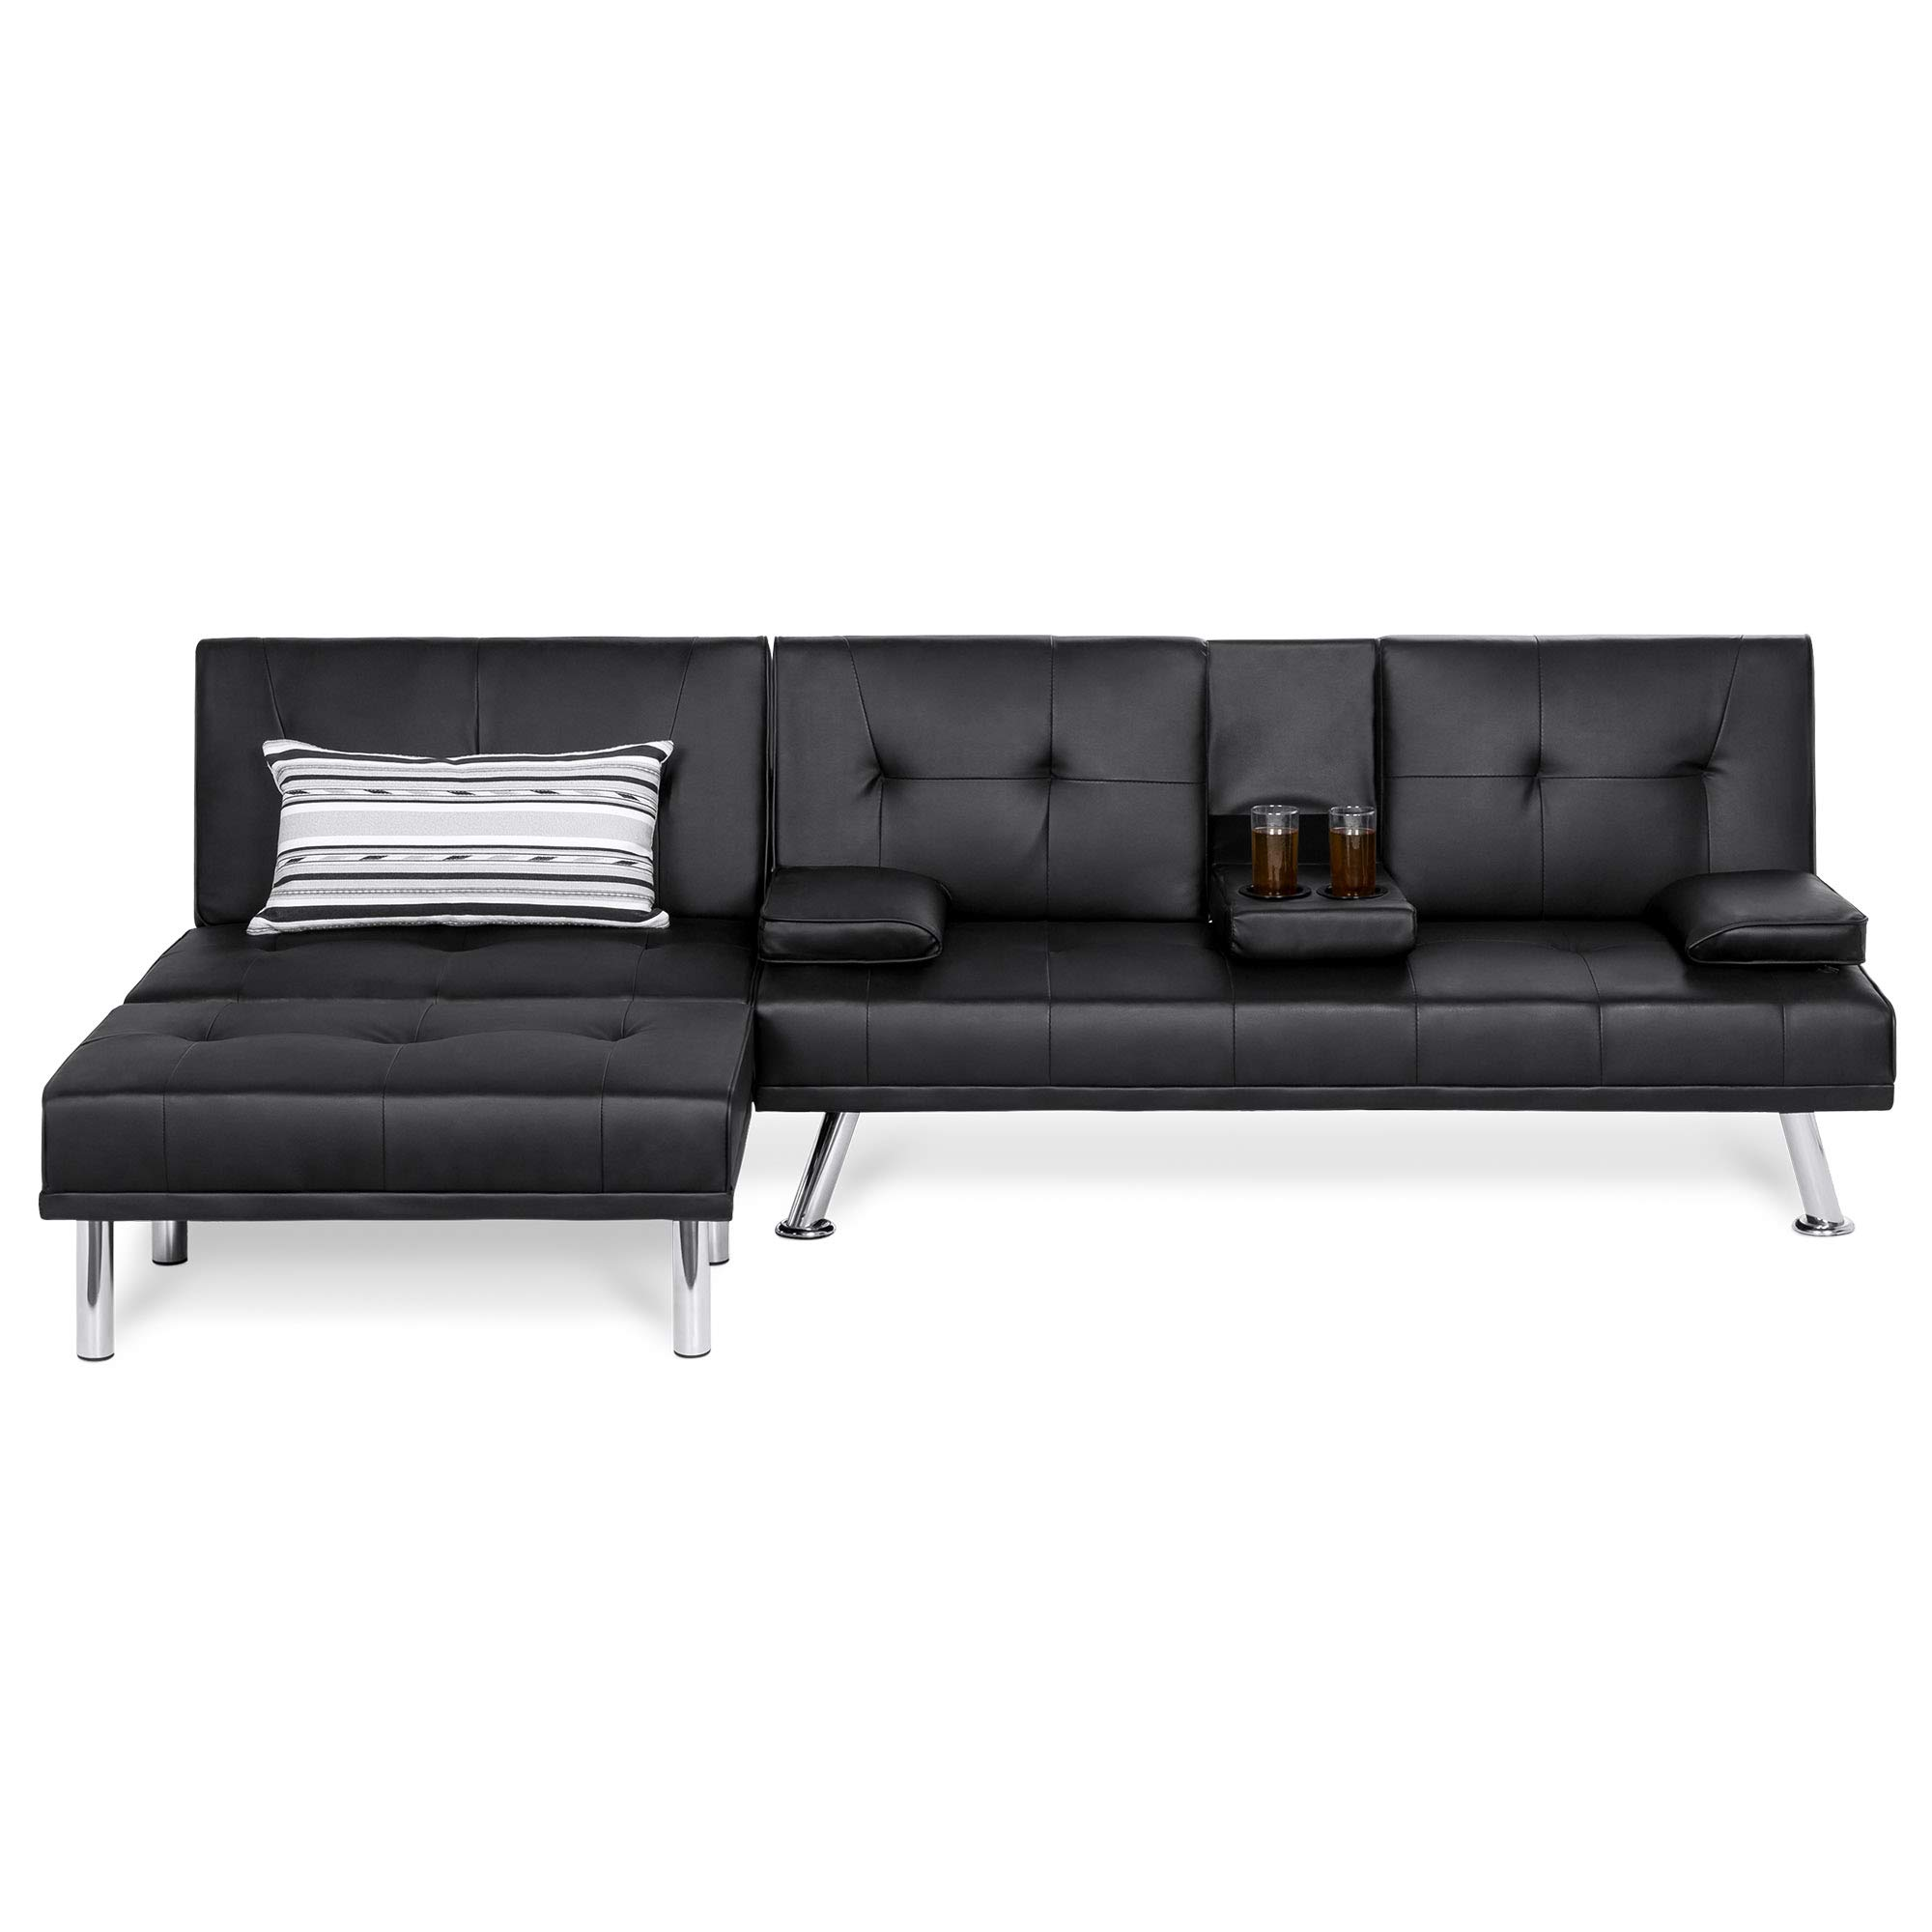 Best Choice Products Faux Leather Upholstery 3-Piece Modular Modern Living Room Sofa Sectional Furniture Set w/Convertible Double Futon Bed, Single-Seat Futon, and Footstool, Reclining Backrests by Best Choice Products